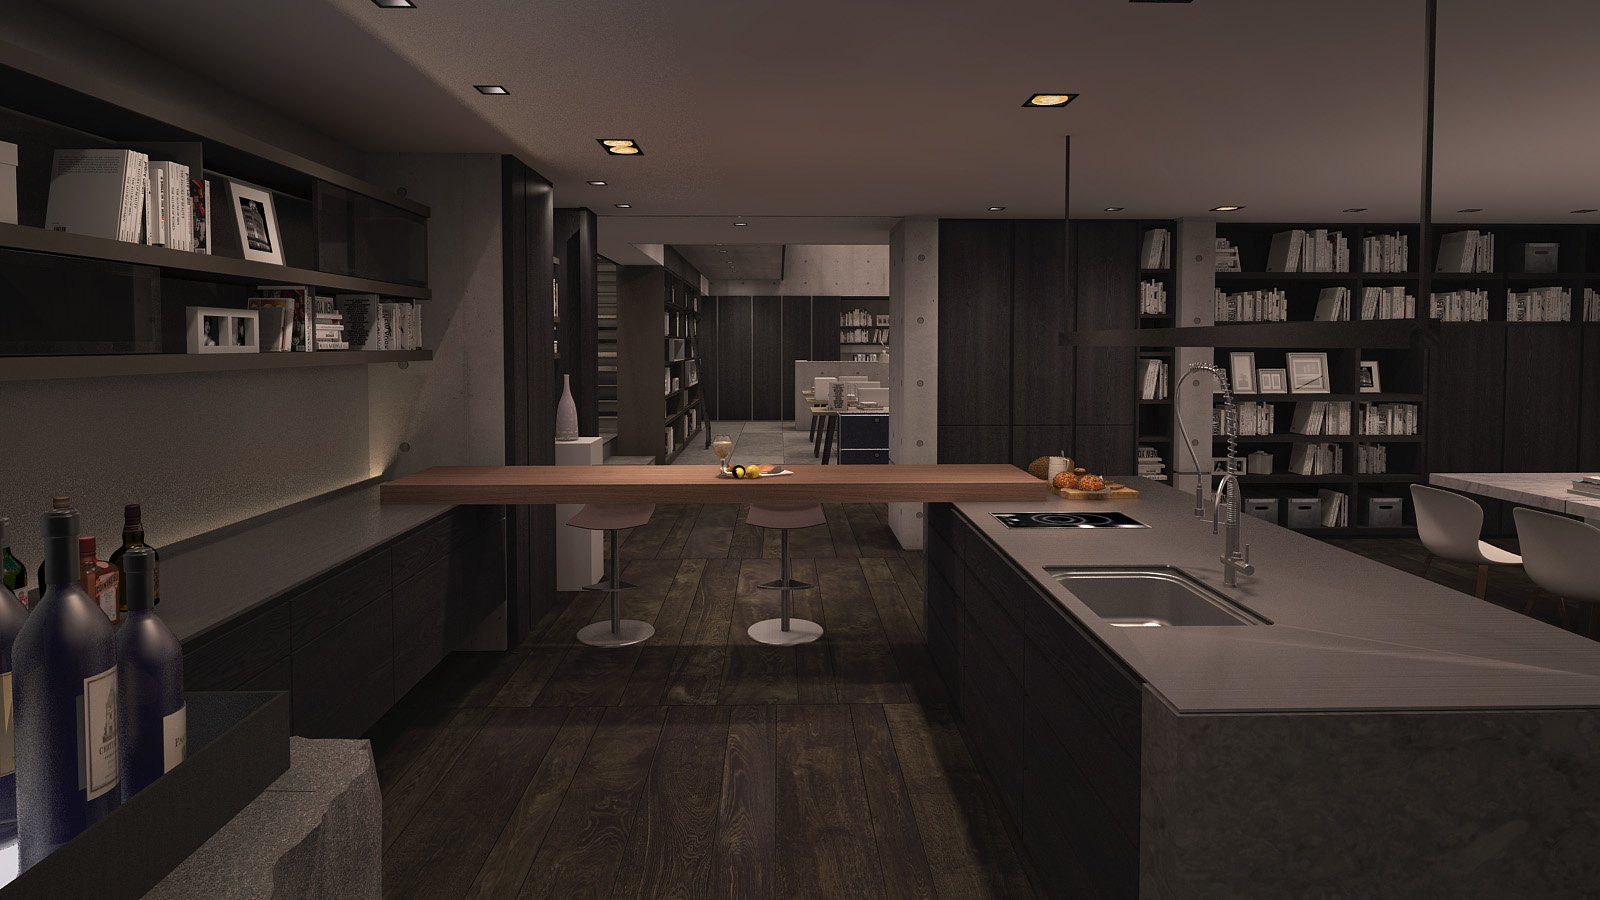 MODULAR KITCHEN Chain10 Architecture & Interior Design Institute}